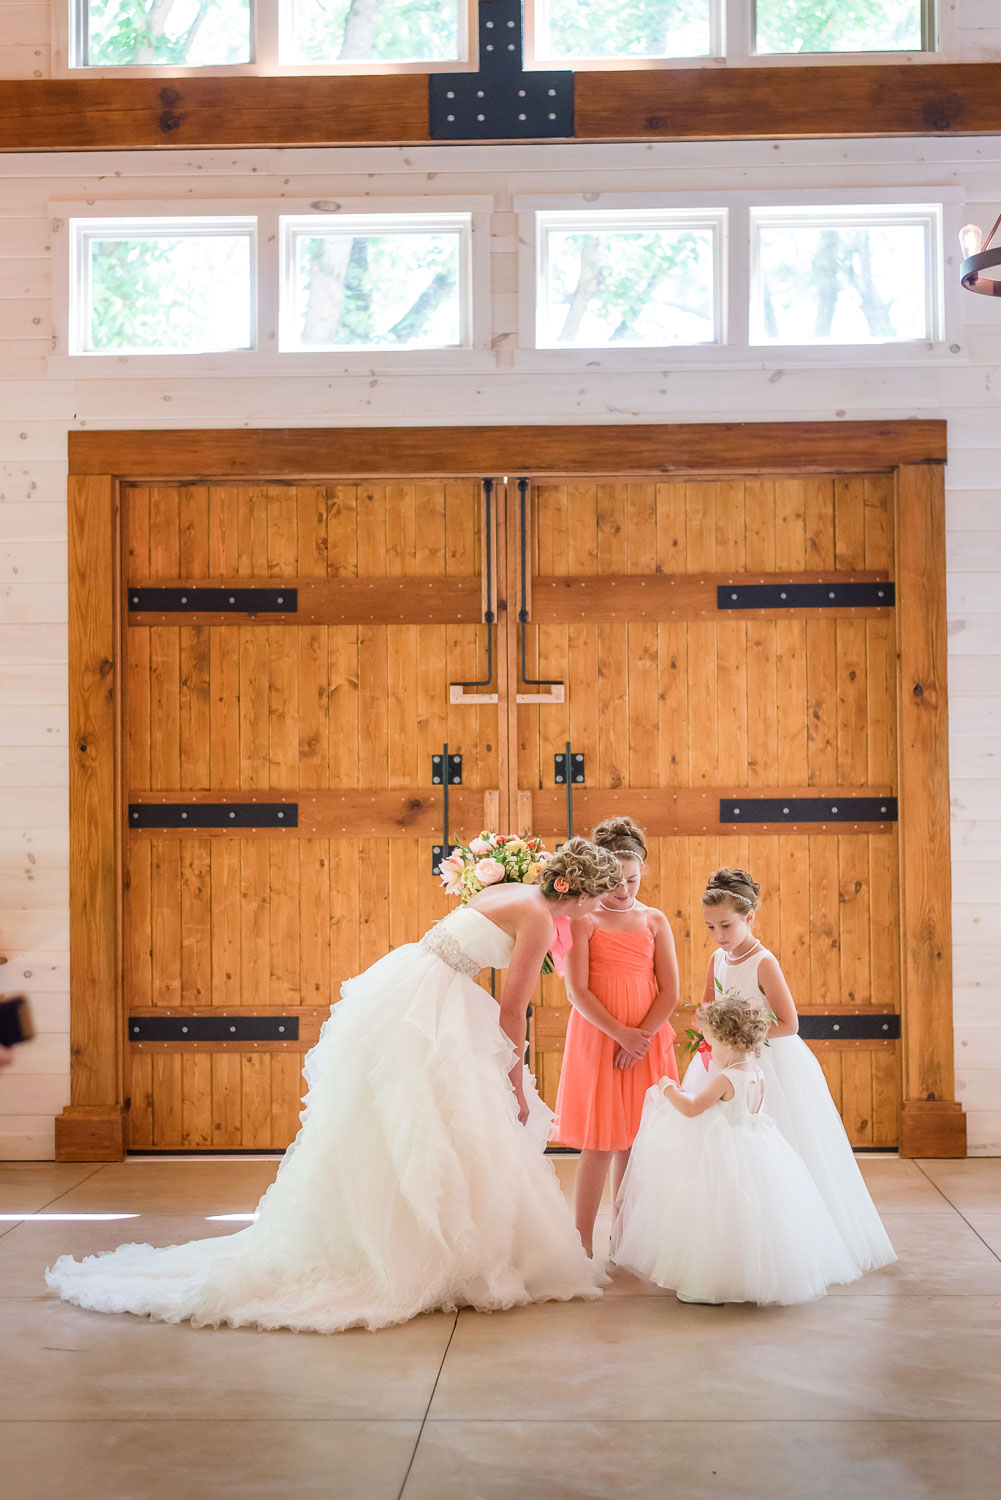 flower girls admiring bride's dress in front of big wooden door